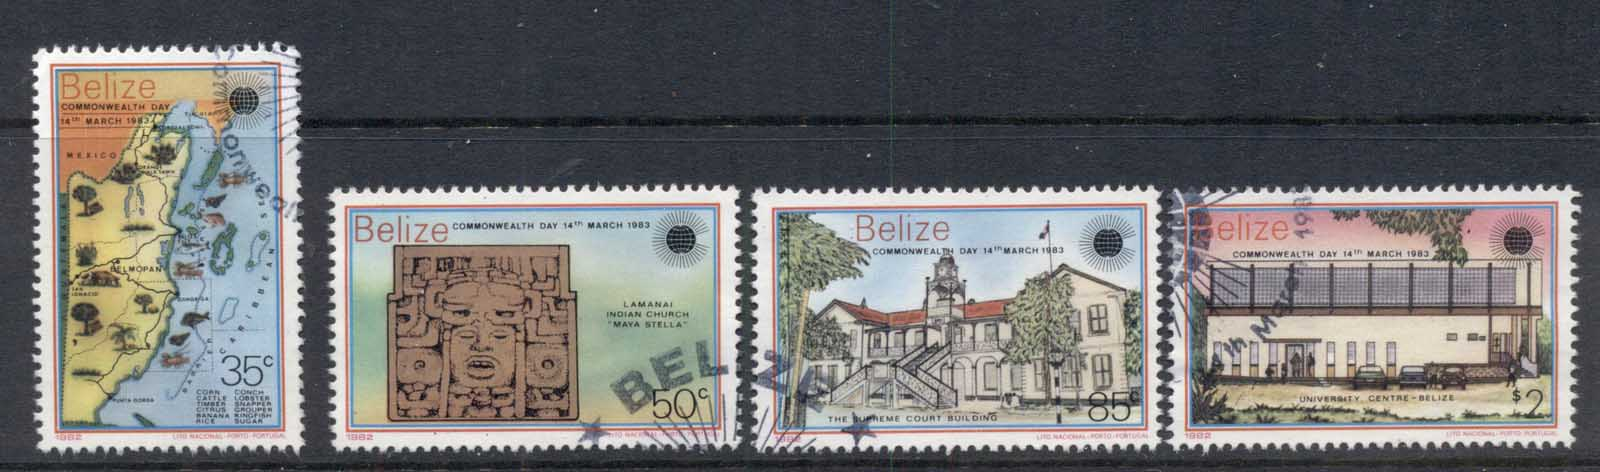 Belize 1983 Commonwealth Day FU